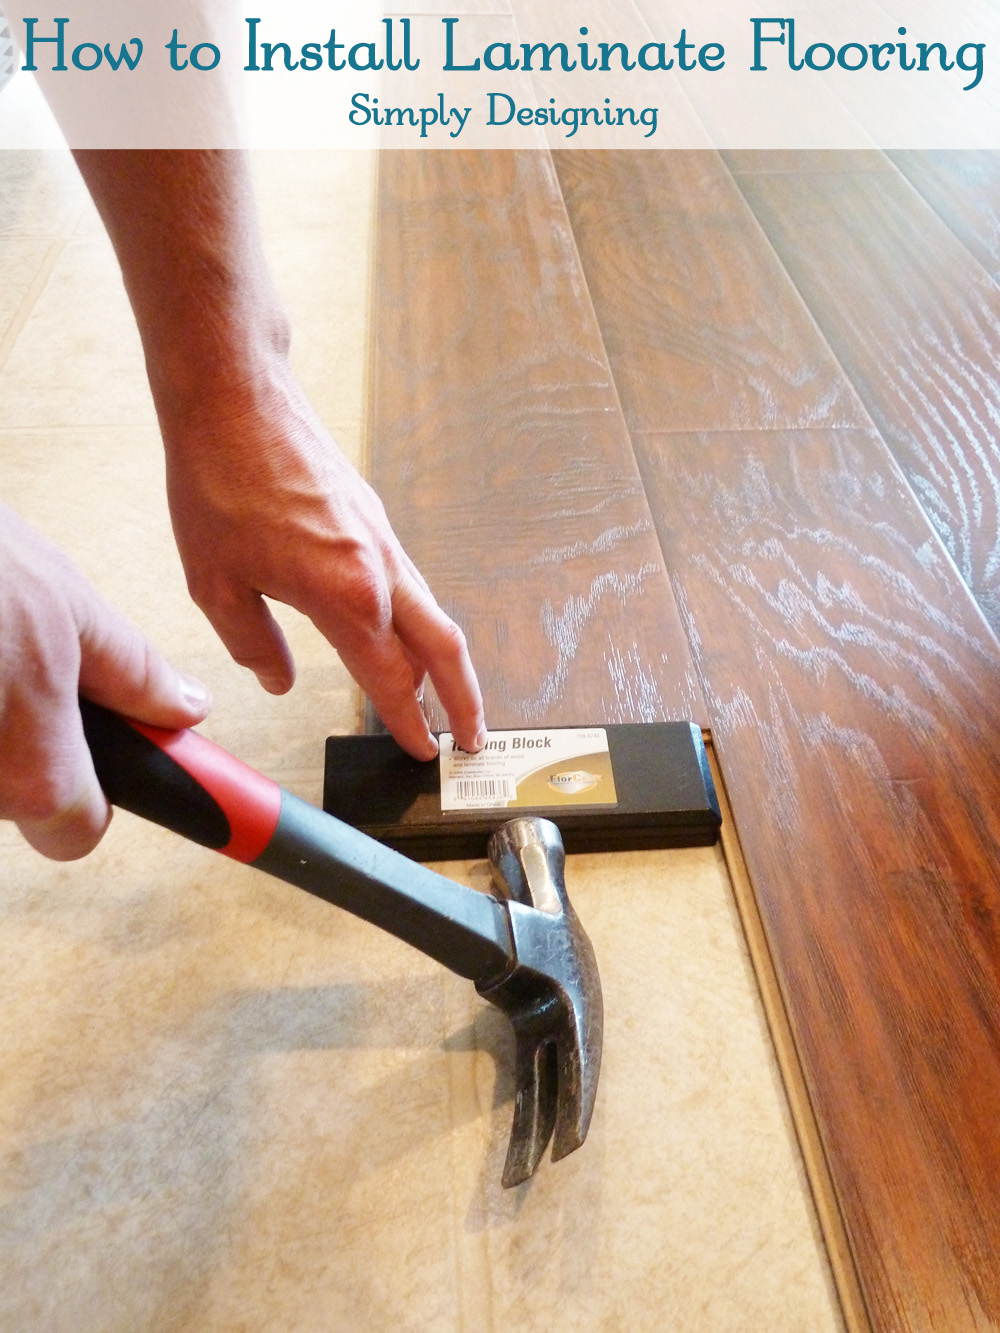 How to Install Floating Laminate Wood Flooring  Part 2   The     How to Install Laminate Flooring    diy  flooring  homeimprovement   laminateflooring   at